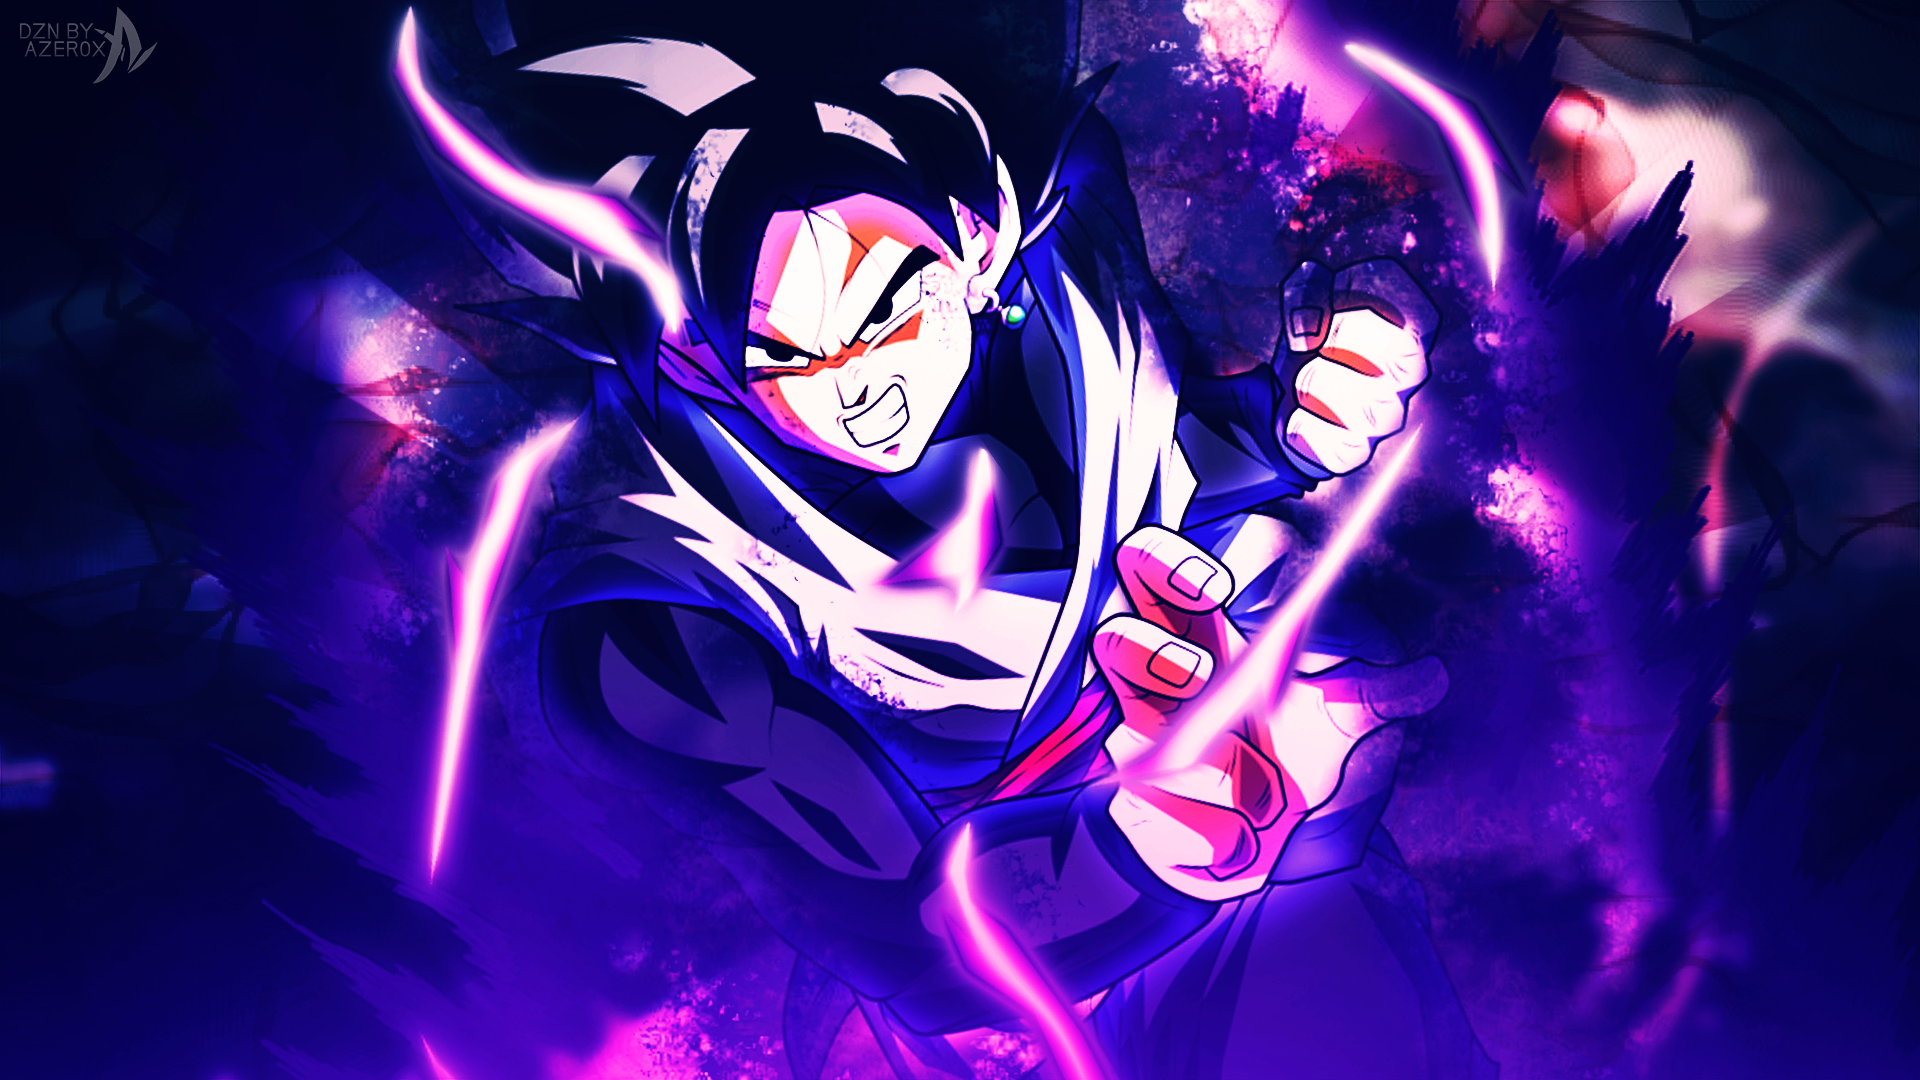 Anime Dragon Ball Super Goku SSGSS Goku Saiyan · HD Wallpaper | Background Image ID:716202